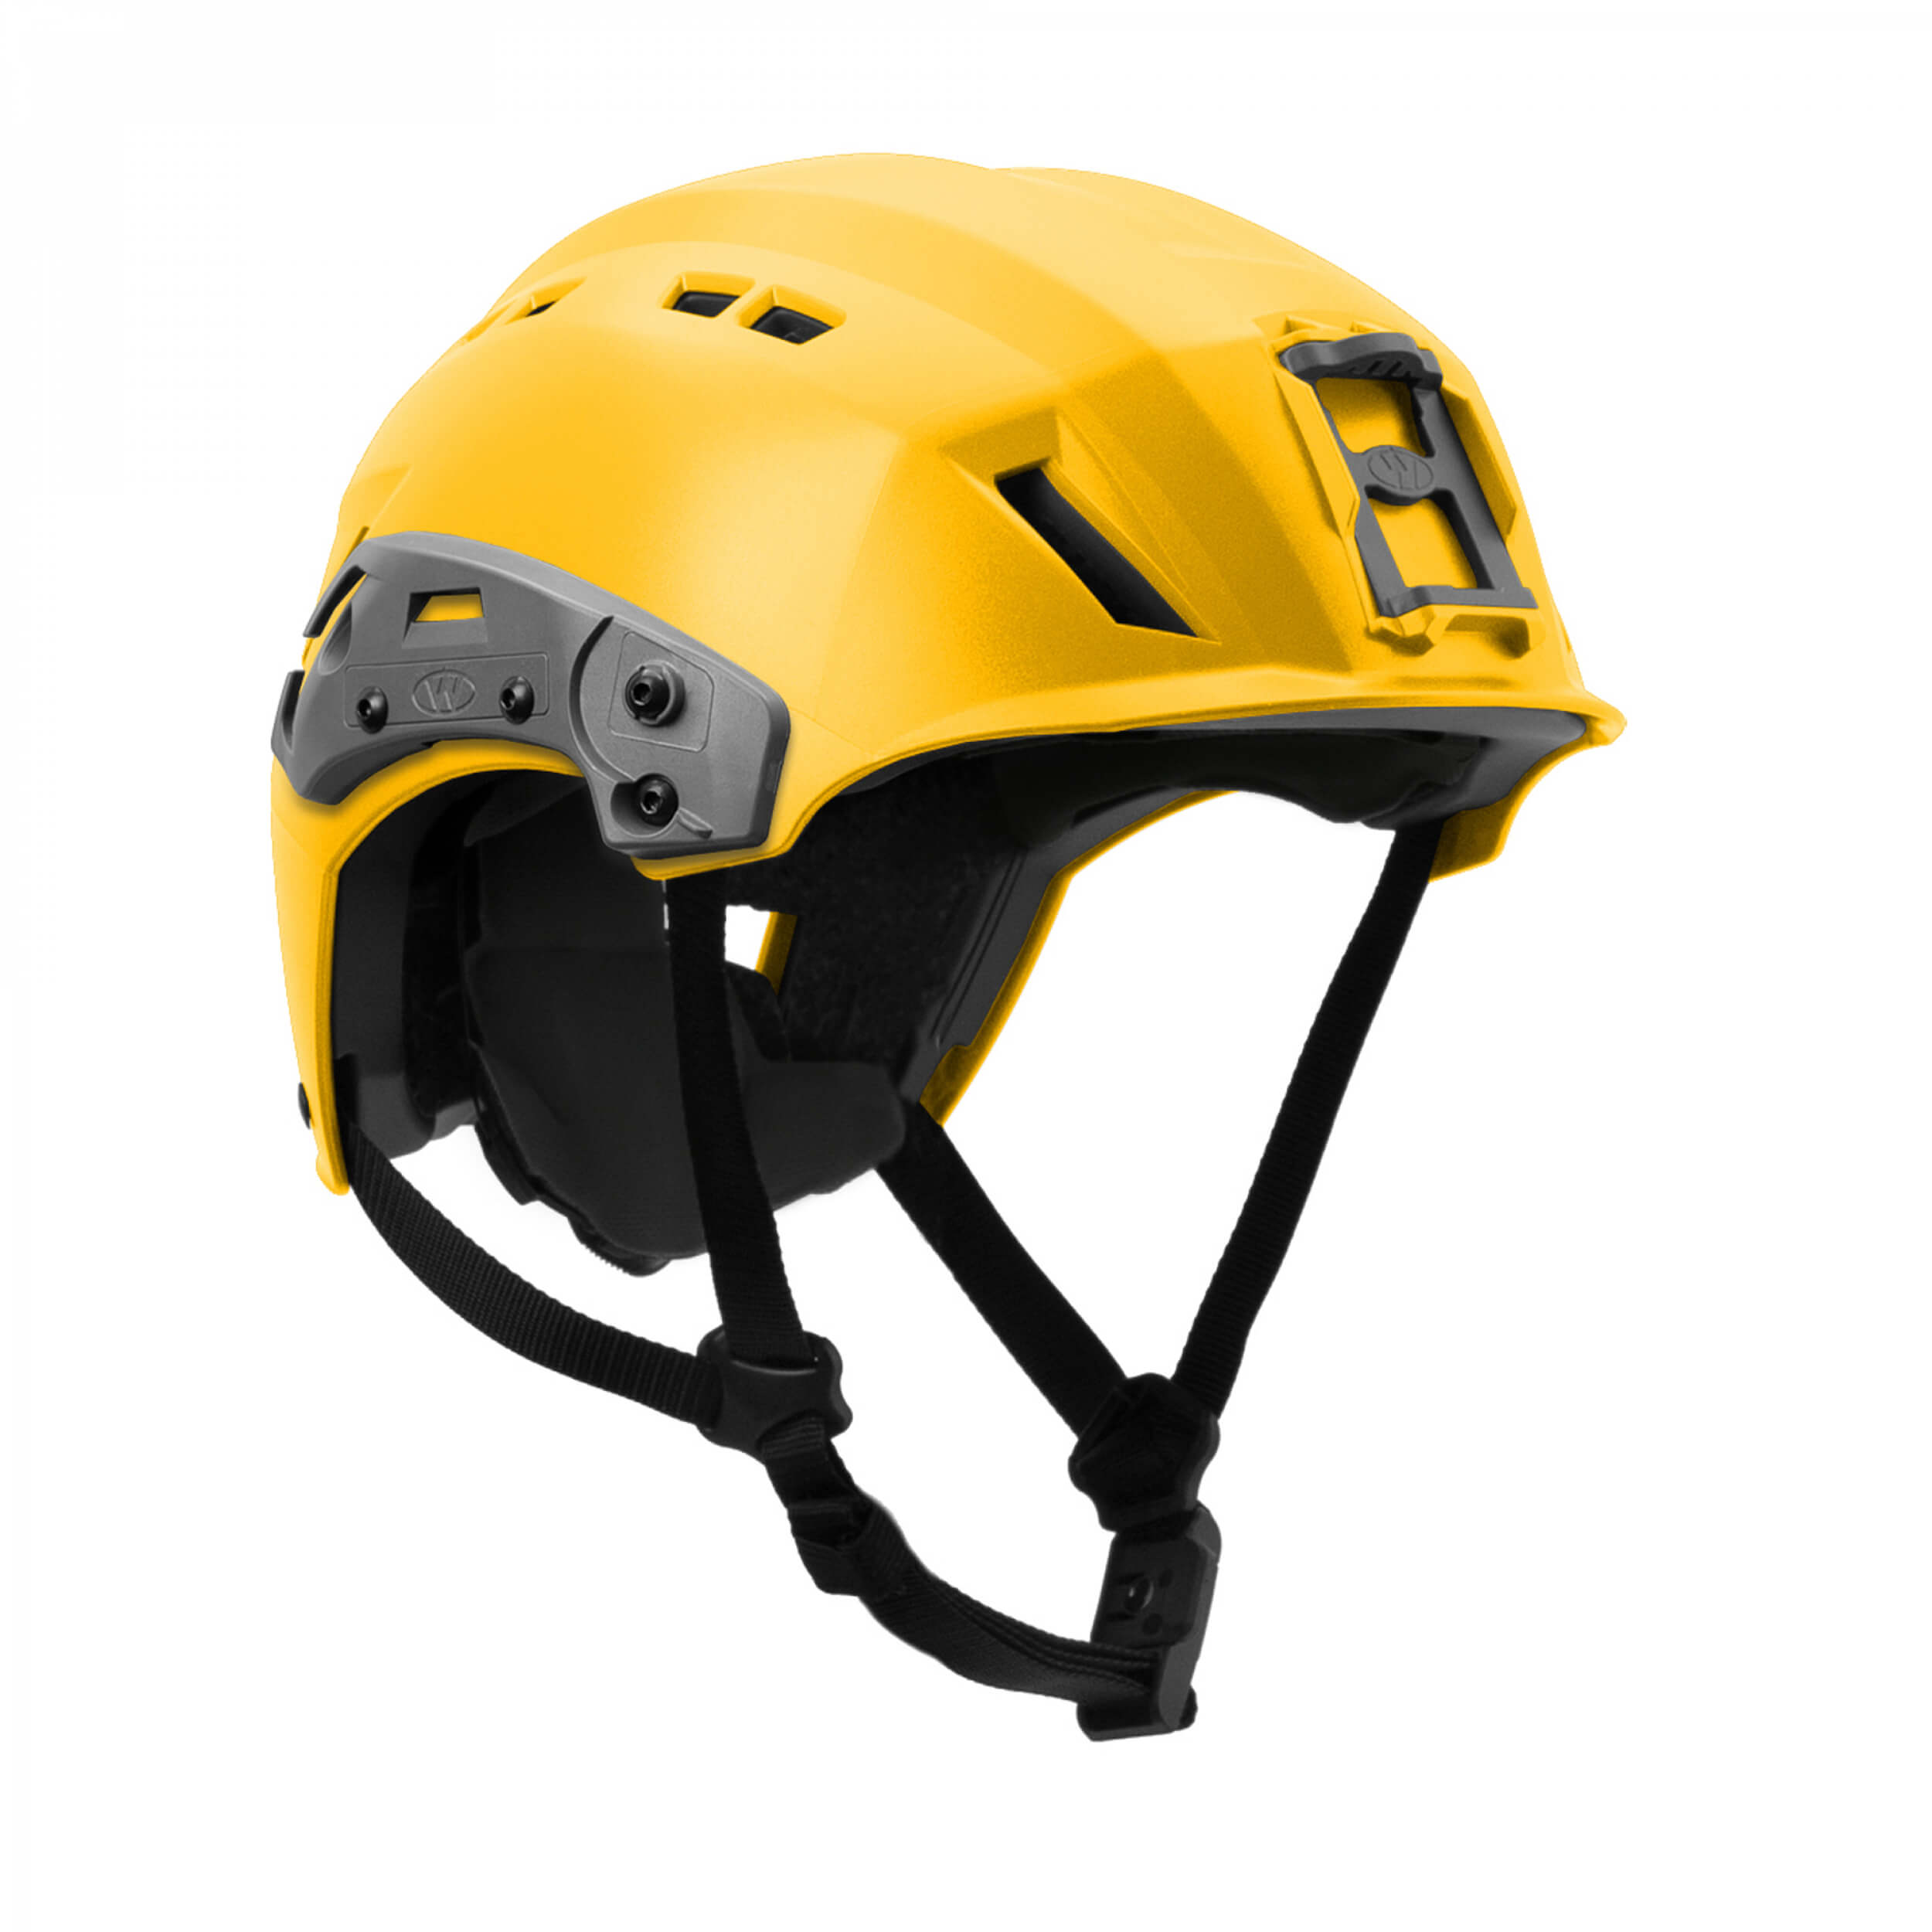 Team Wendy EXFIL SAR Backcountry Helmet with Rails yellow